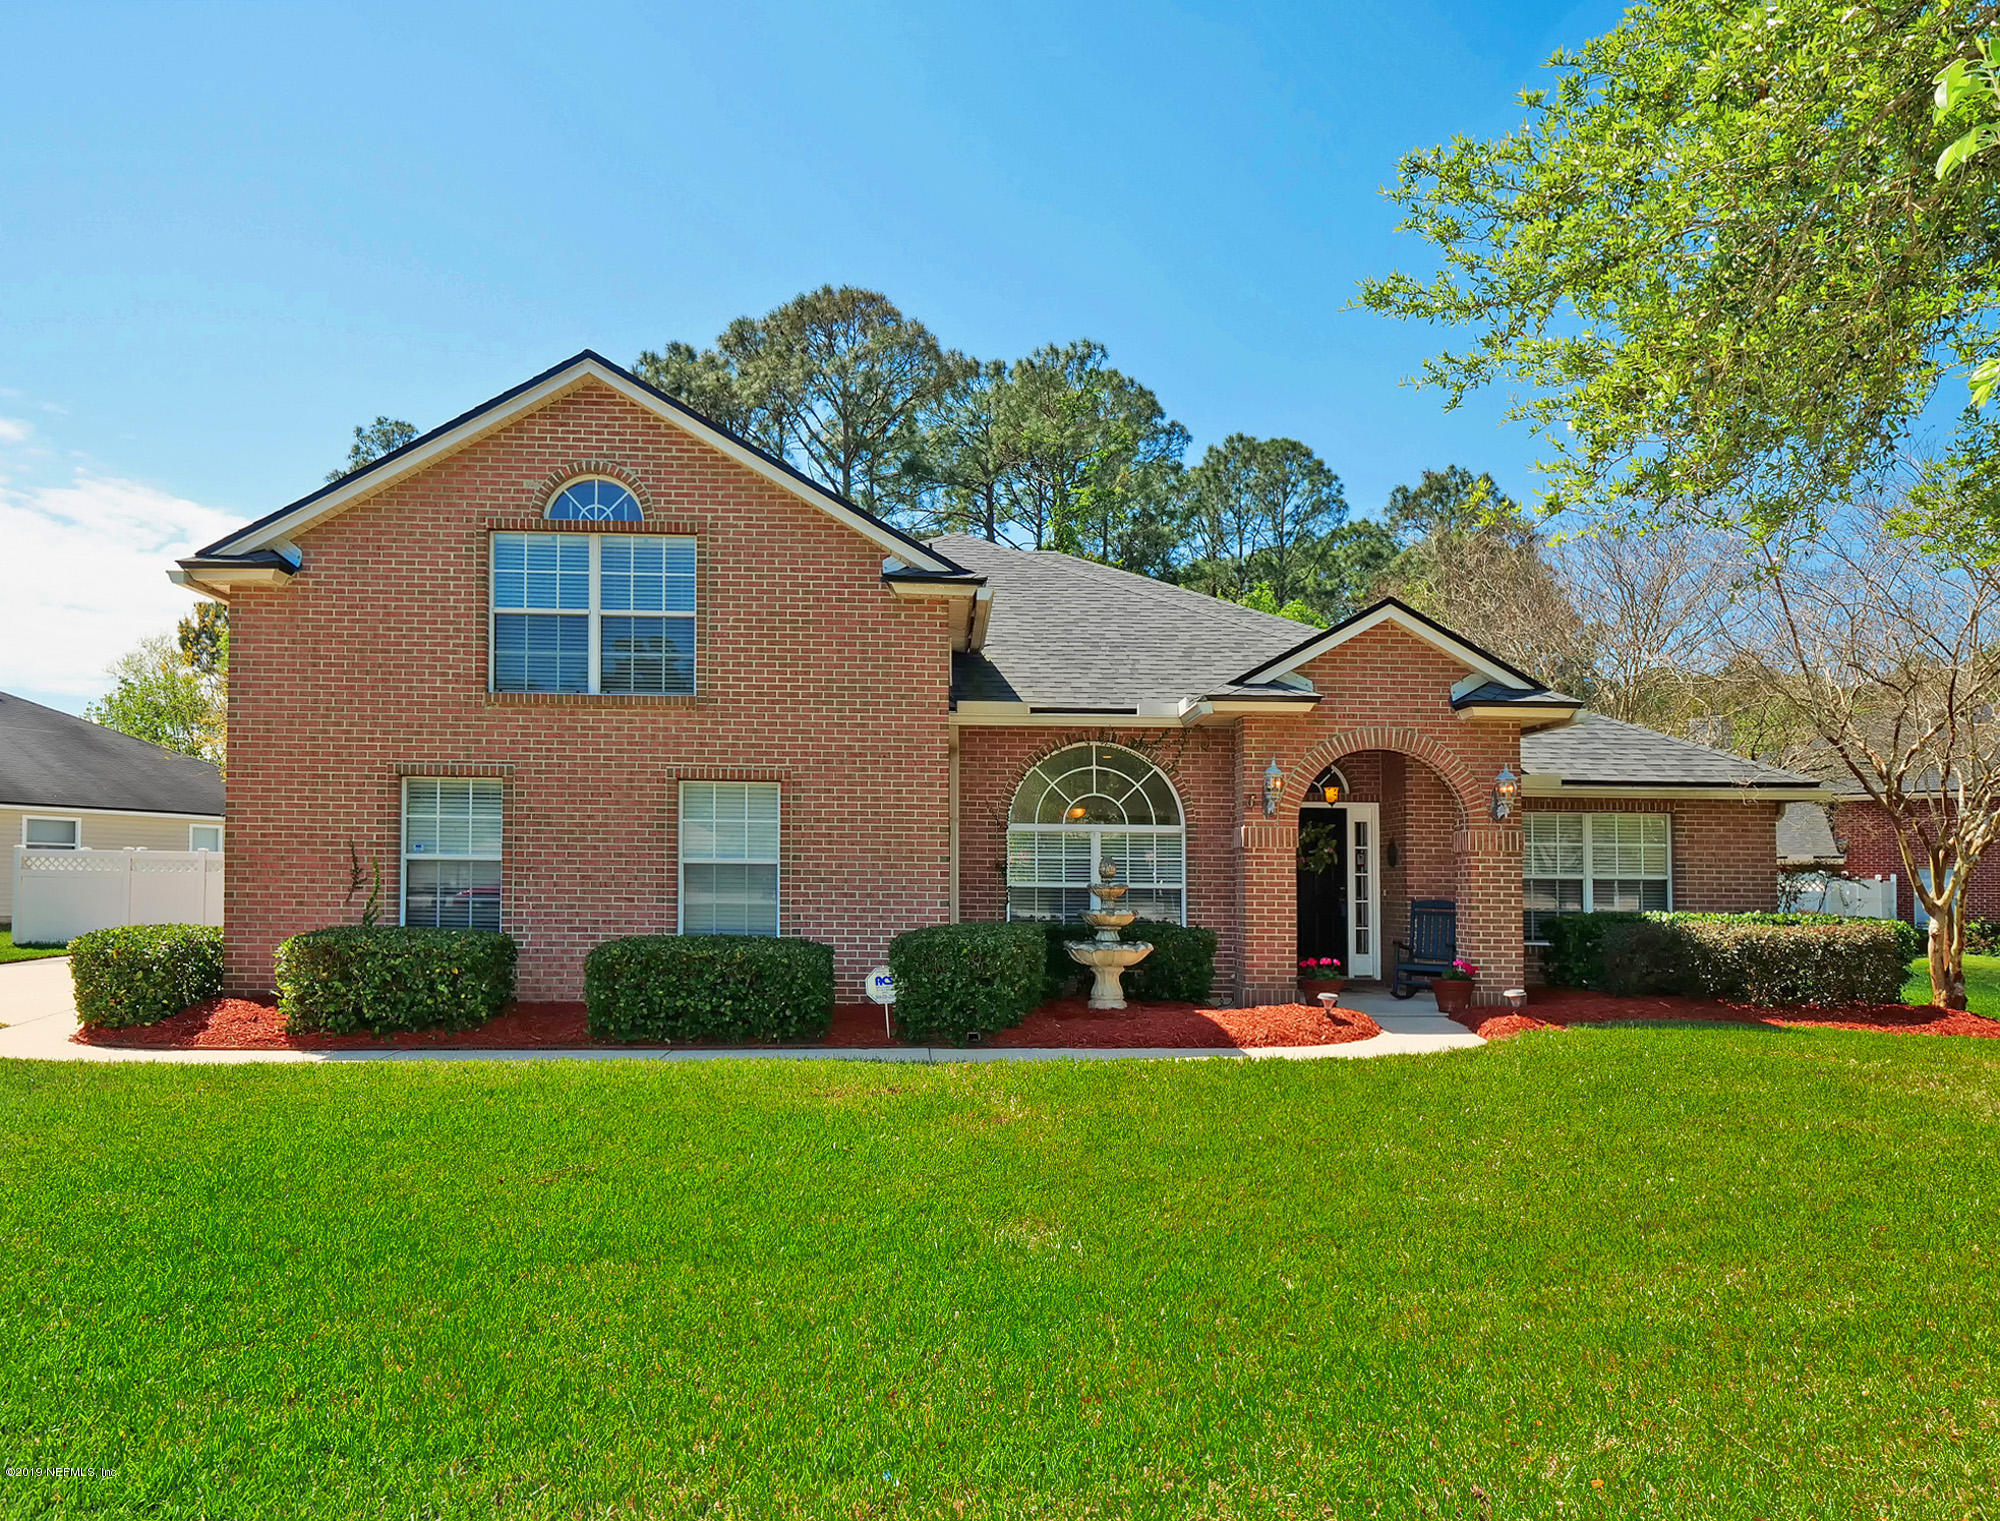 301 PARKE VIEW, ST JOHNS, FLORIDA 32259, 4 Bedrooms Bedrooms, ,3 BathroomsBathrooms,Residential - single family,For sale,PARKE VIEW,985650